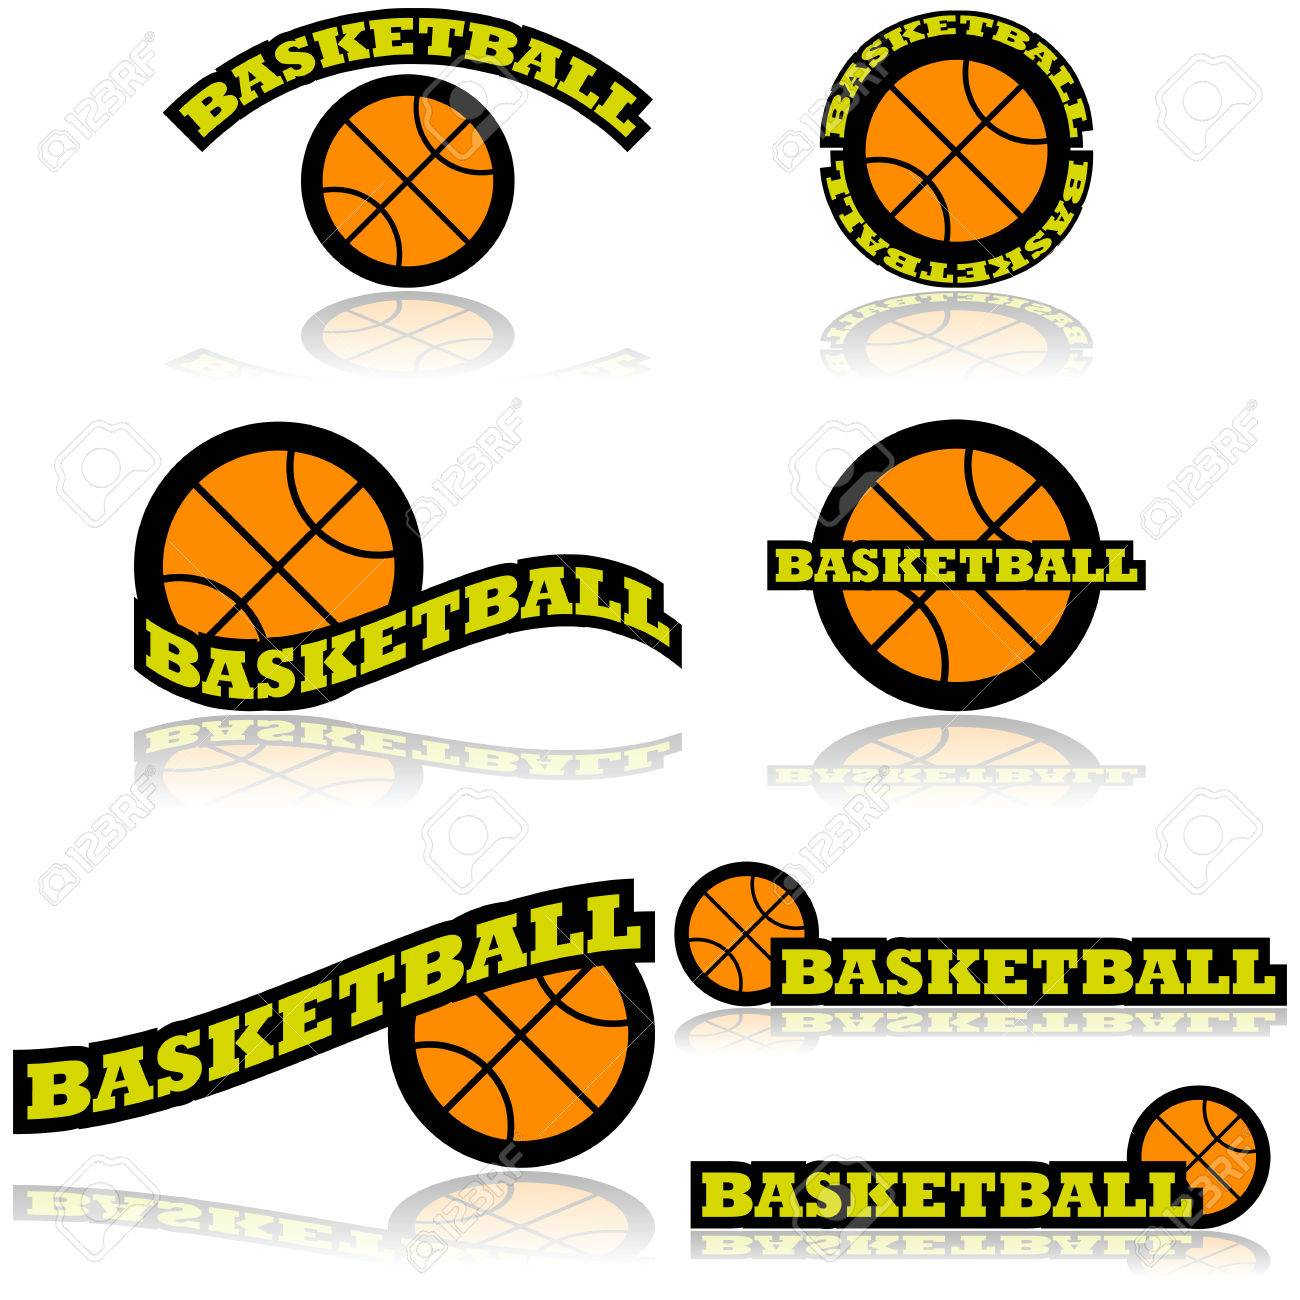 icon set showing a basketball combined with different